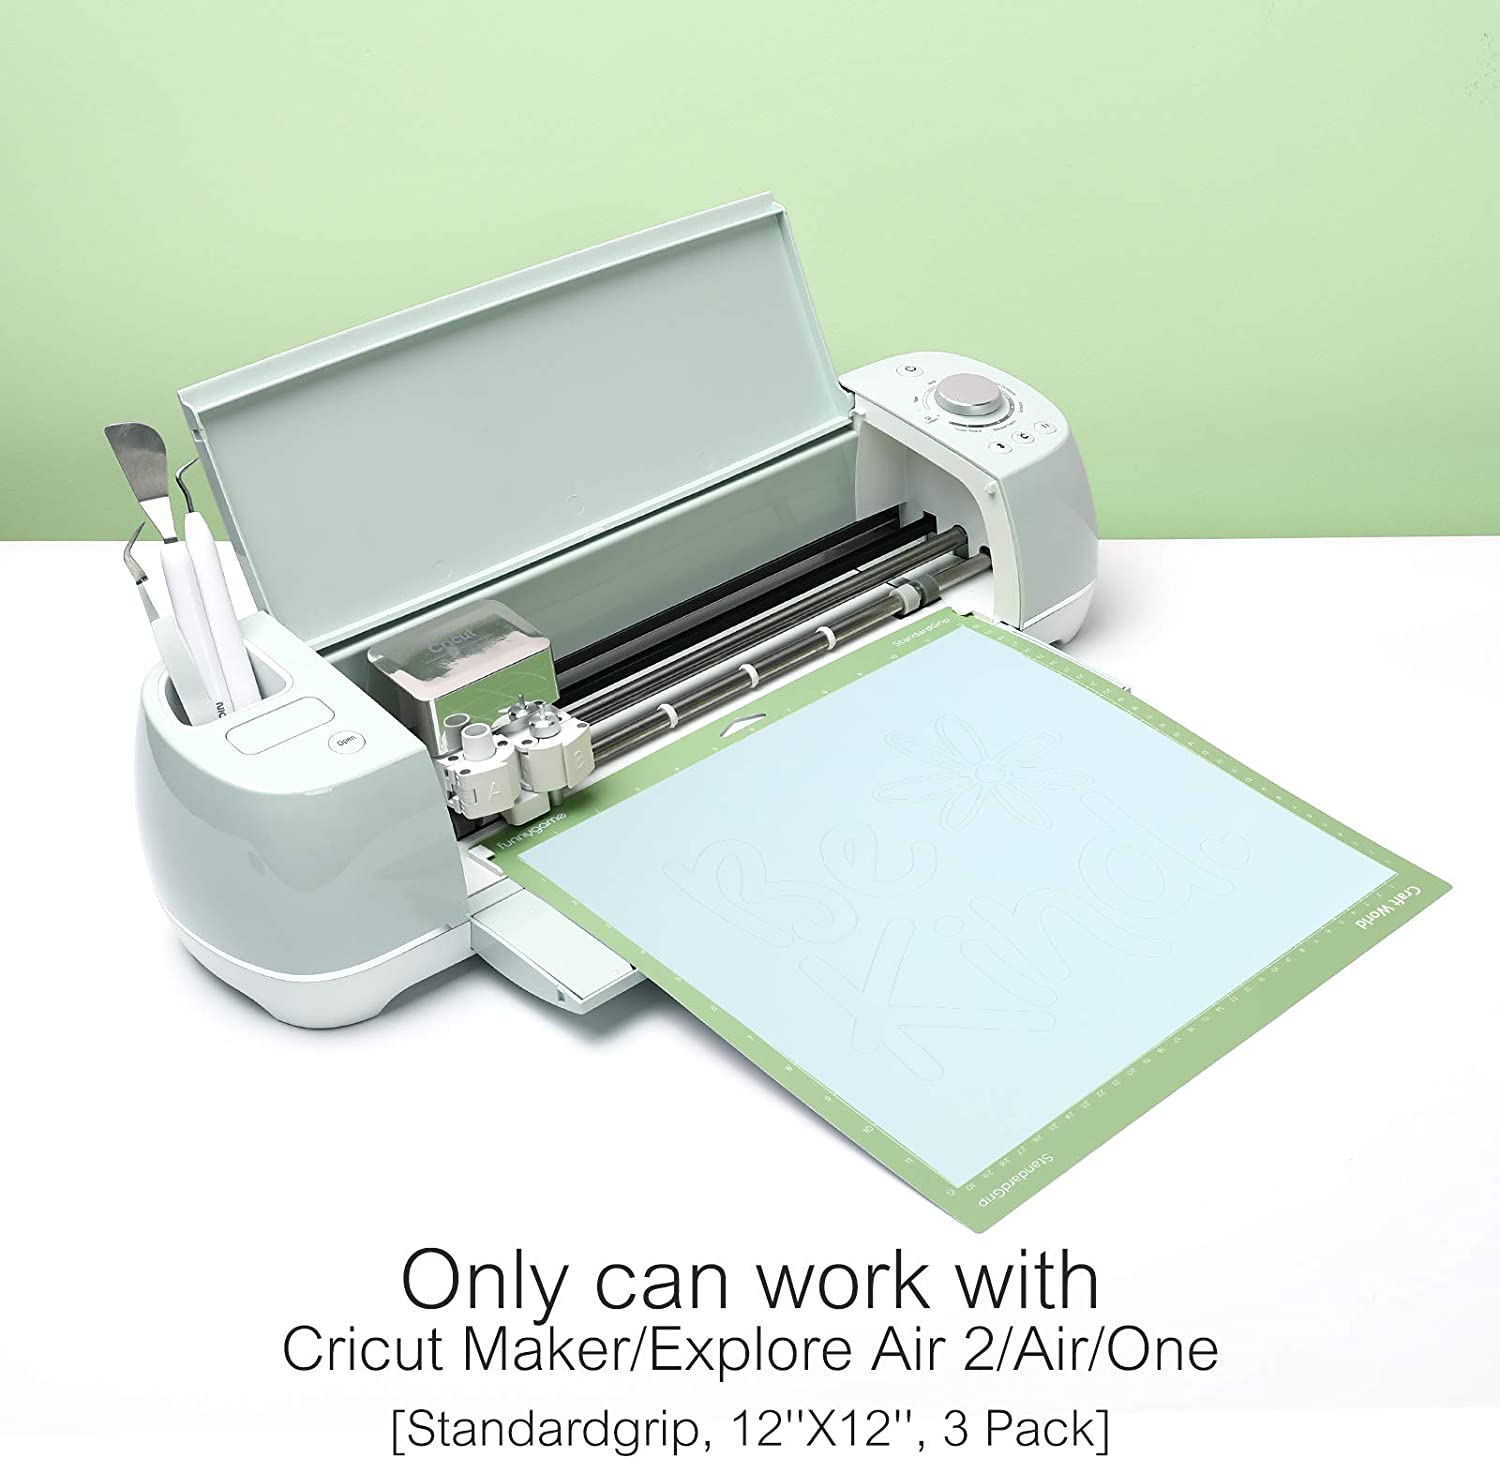 Stronggrip, 3 Pieces Cricket Mat Perfect Stickiness for Thick Material Craft World 12x12 Cutting Mat for Cricut Maker//Explore Air 2//Air//One